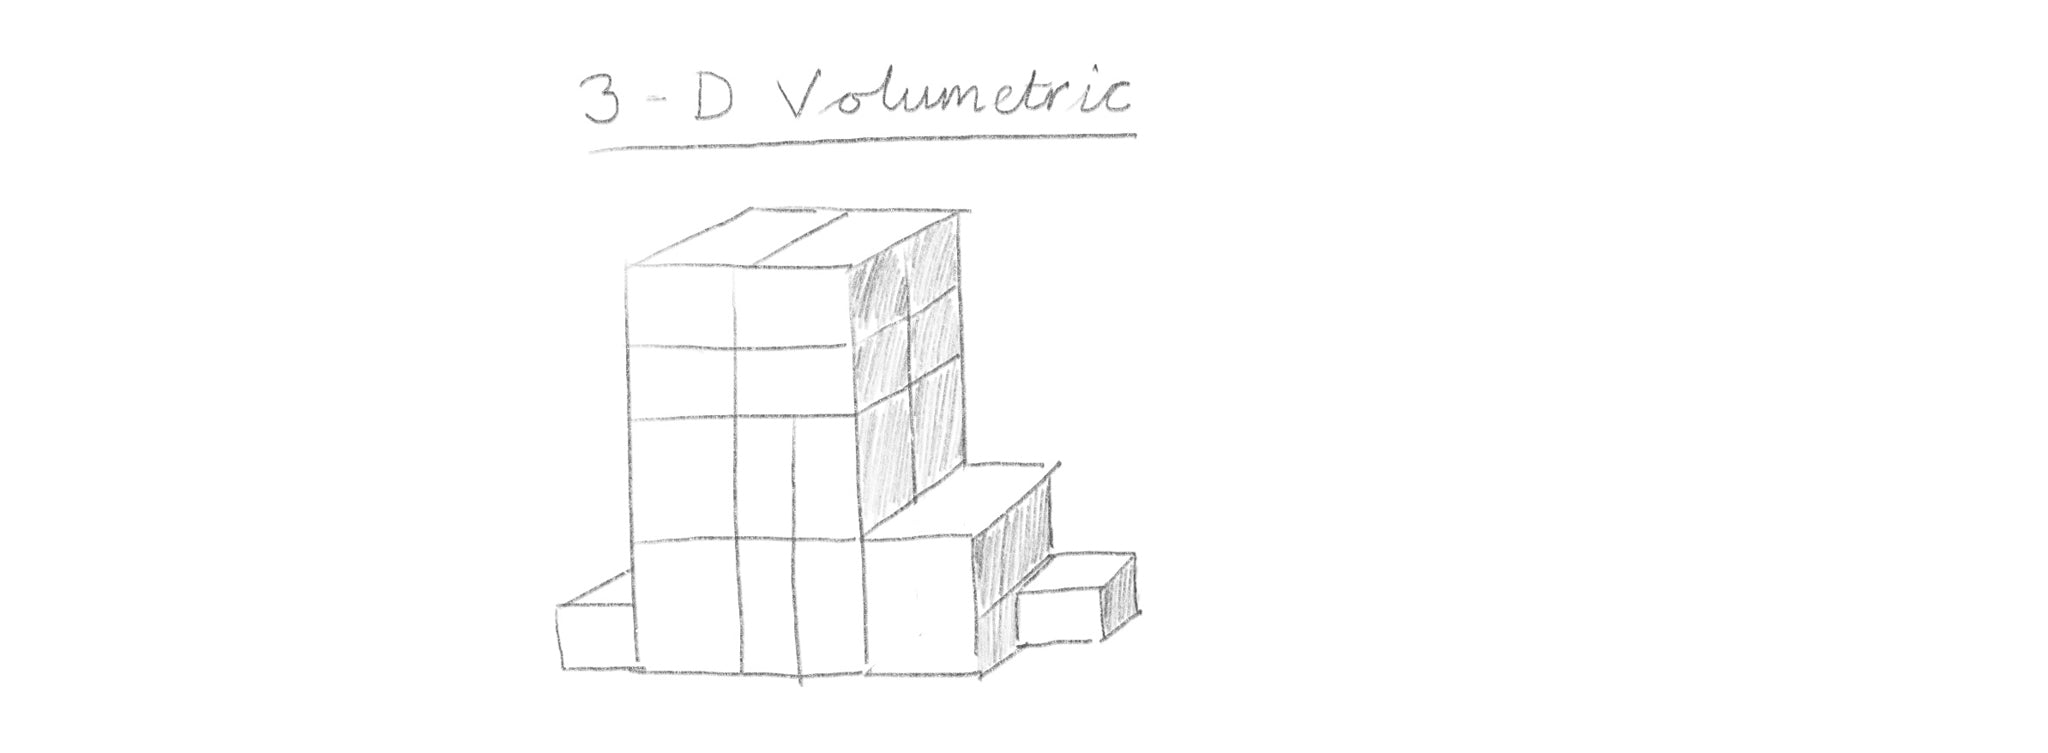 3-D volumetric block constructions